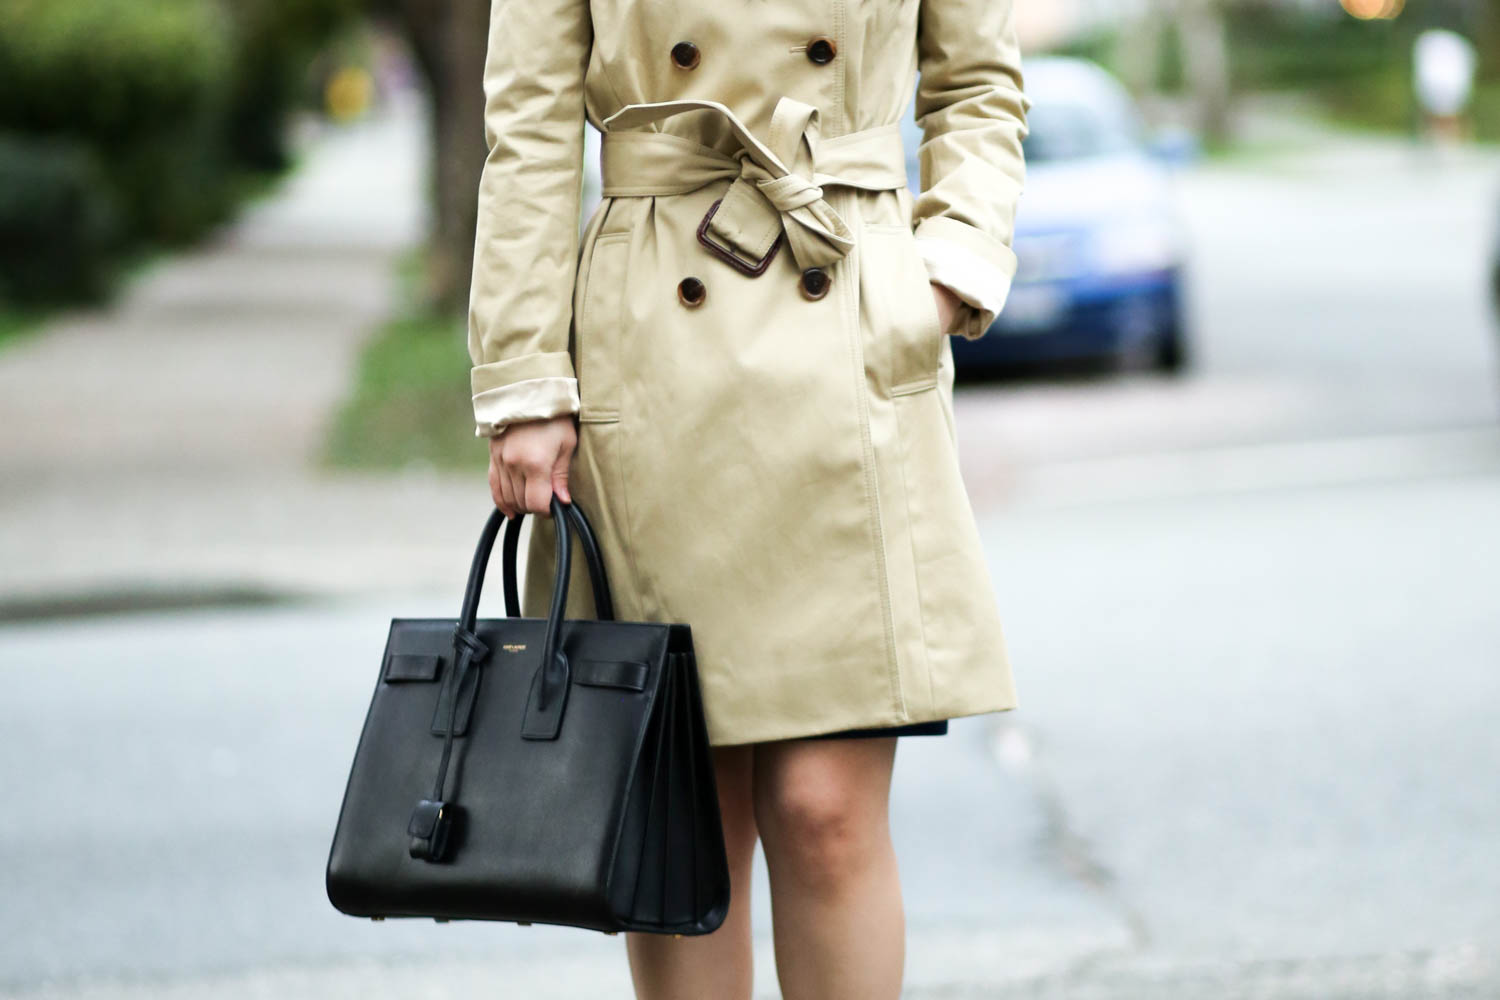 66c041819d0 Corporate Monday    Trench Coat with Structured Knit Zip Dress. I bought  this J. Crew trench coat because my Banana Republic parka was getting a  little too ...